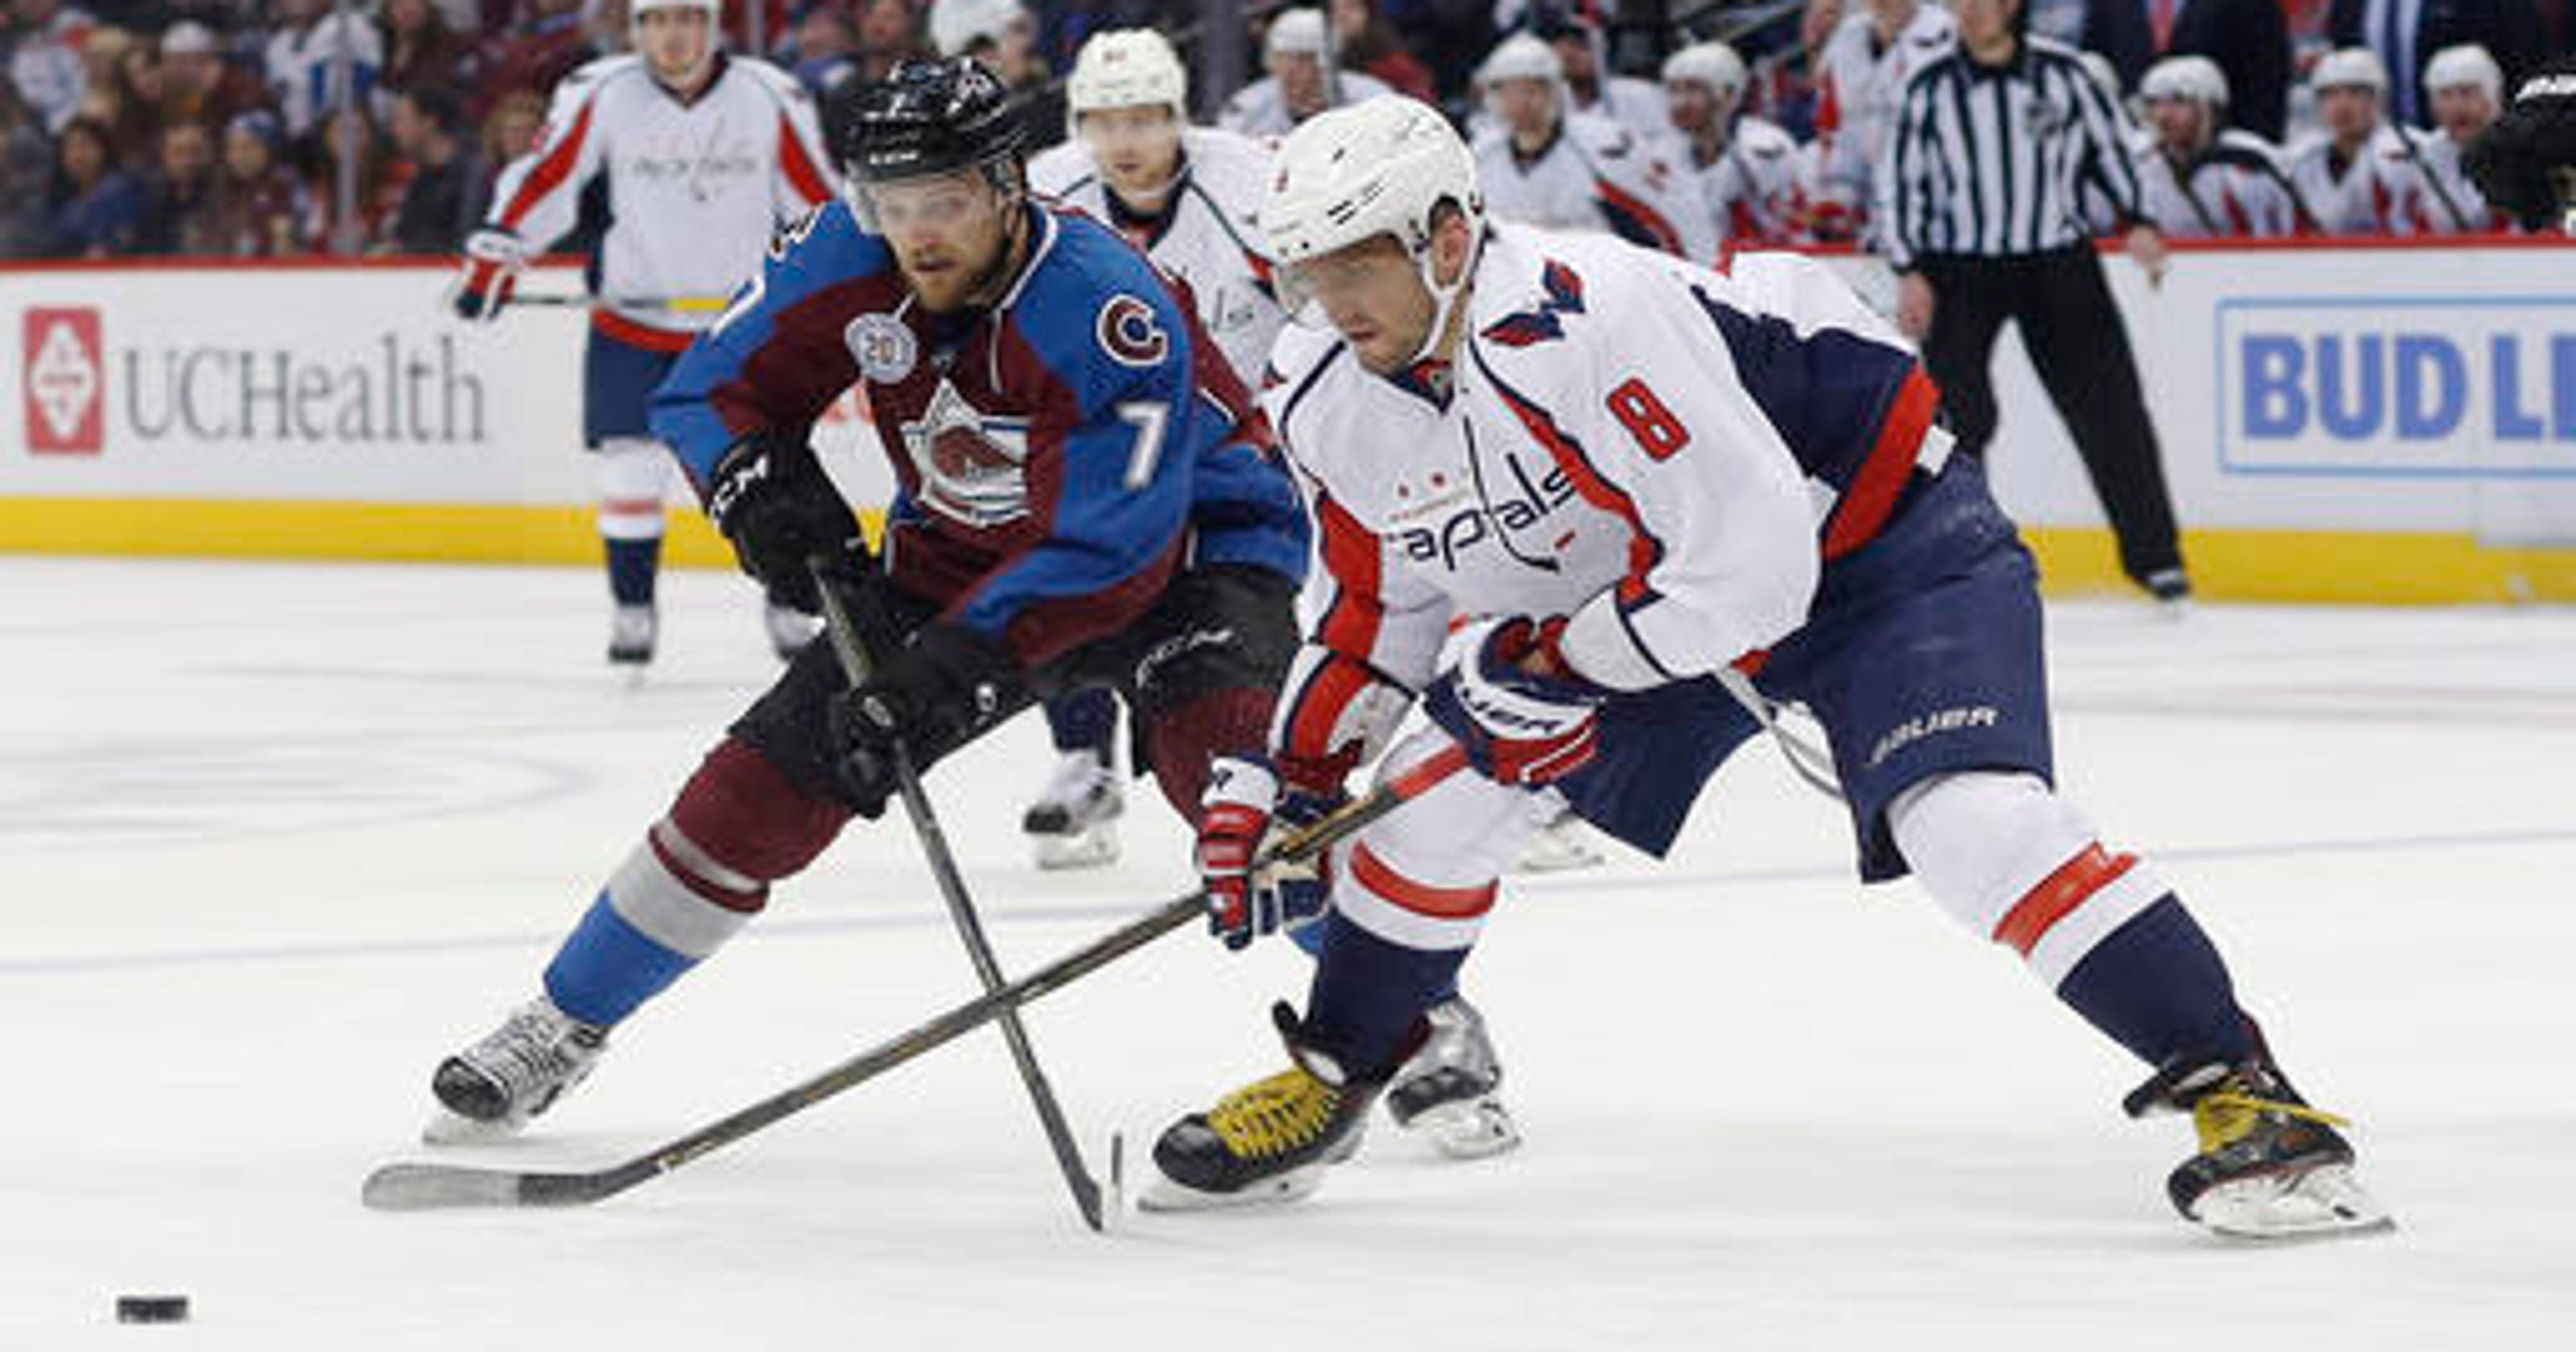 Capitals beat Avs 4-2 for franchise-record 55th win of year b7a0597bd0f9